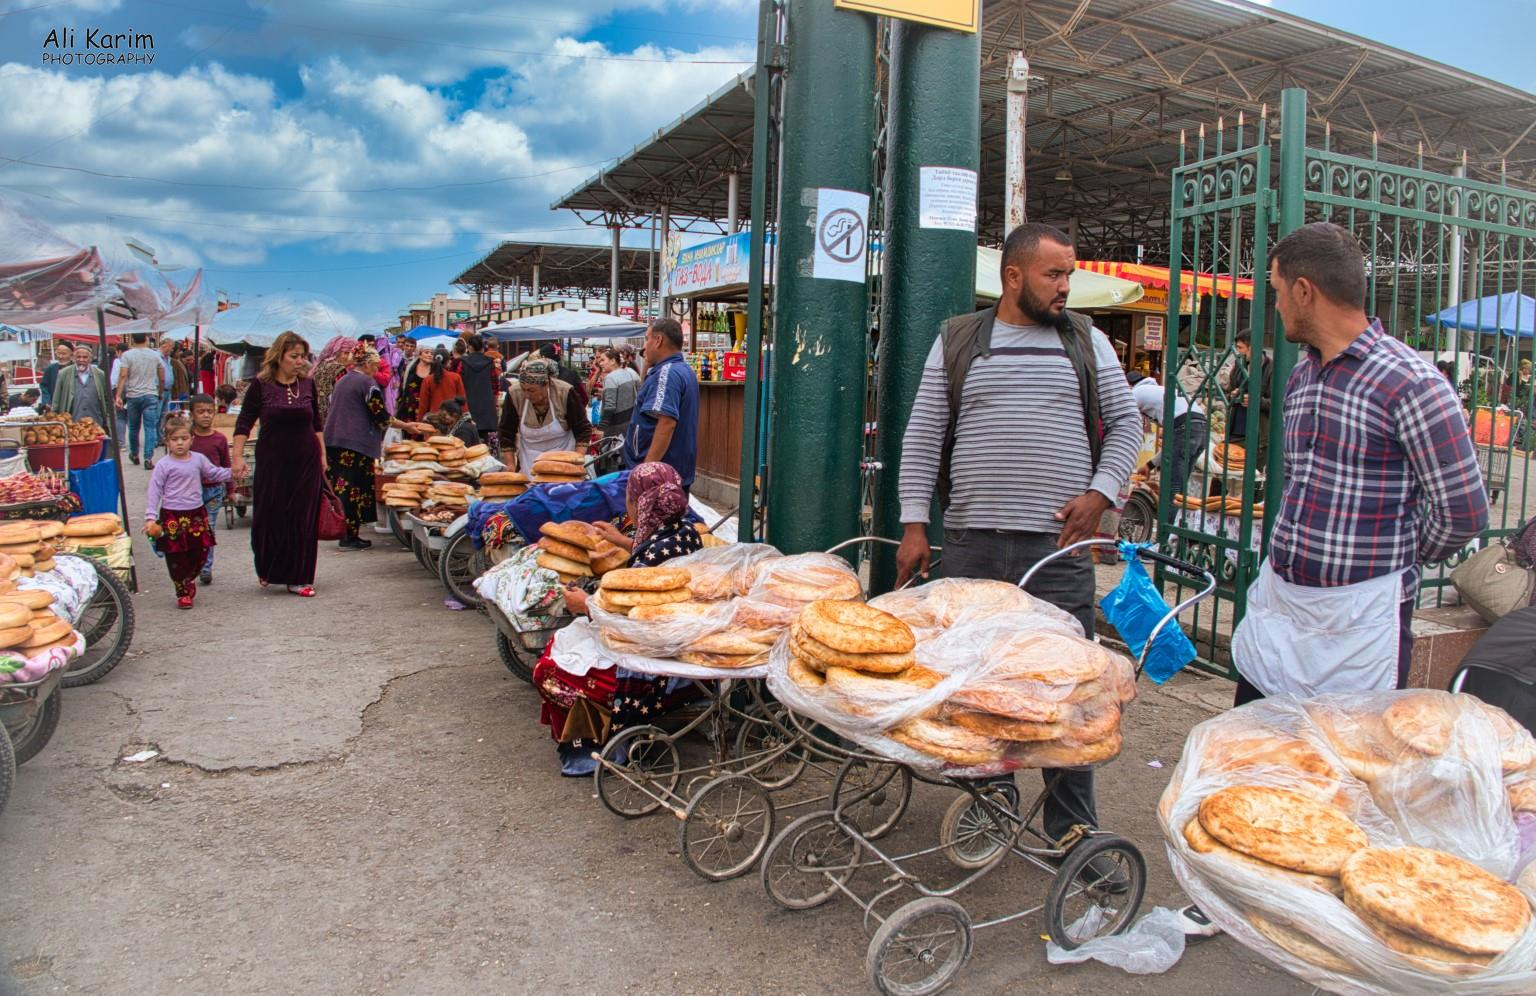 More Samarkand, Breads and prams